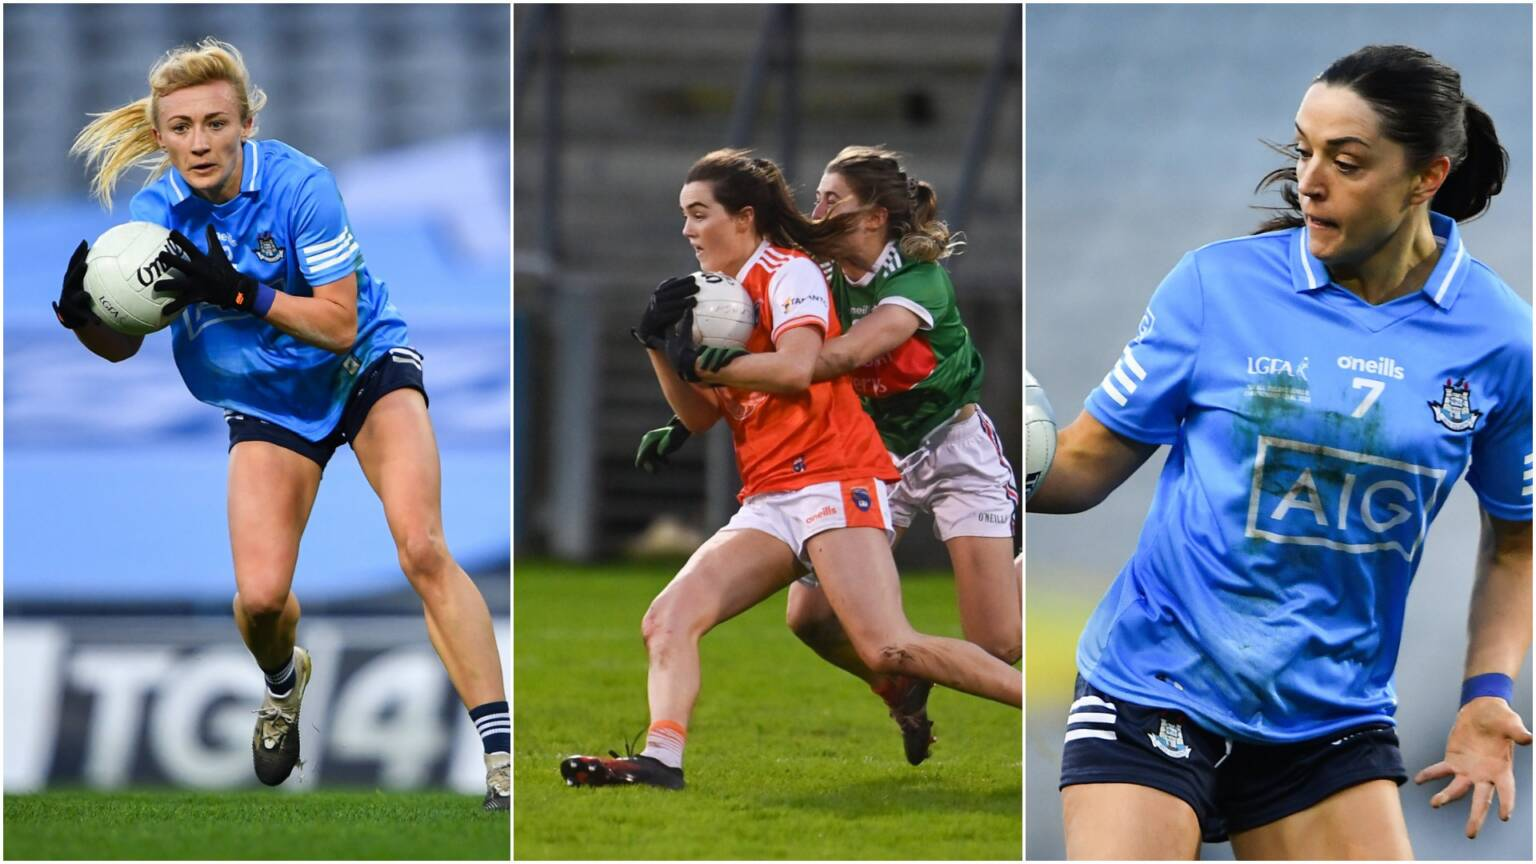 Dublin's Carla Rowe, Armagh's Aimee Mackin and Dublin's Sinead Goldrick are nominated for the Senior Players Player of the Year Award, winner will be announced on a special tv show to honour the teams of the 2020 All Ireland Ladies Football championships